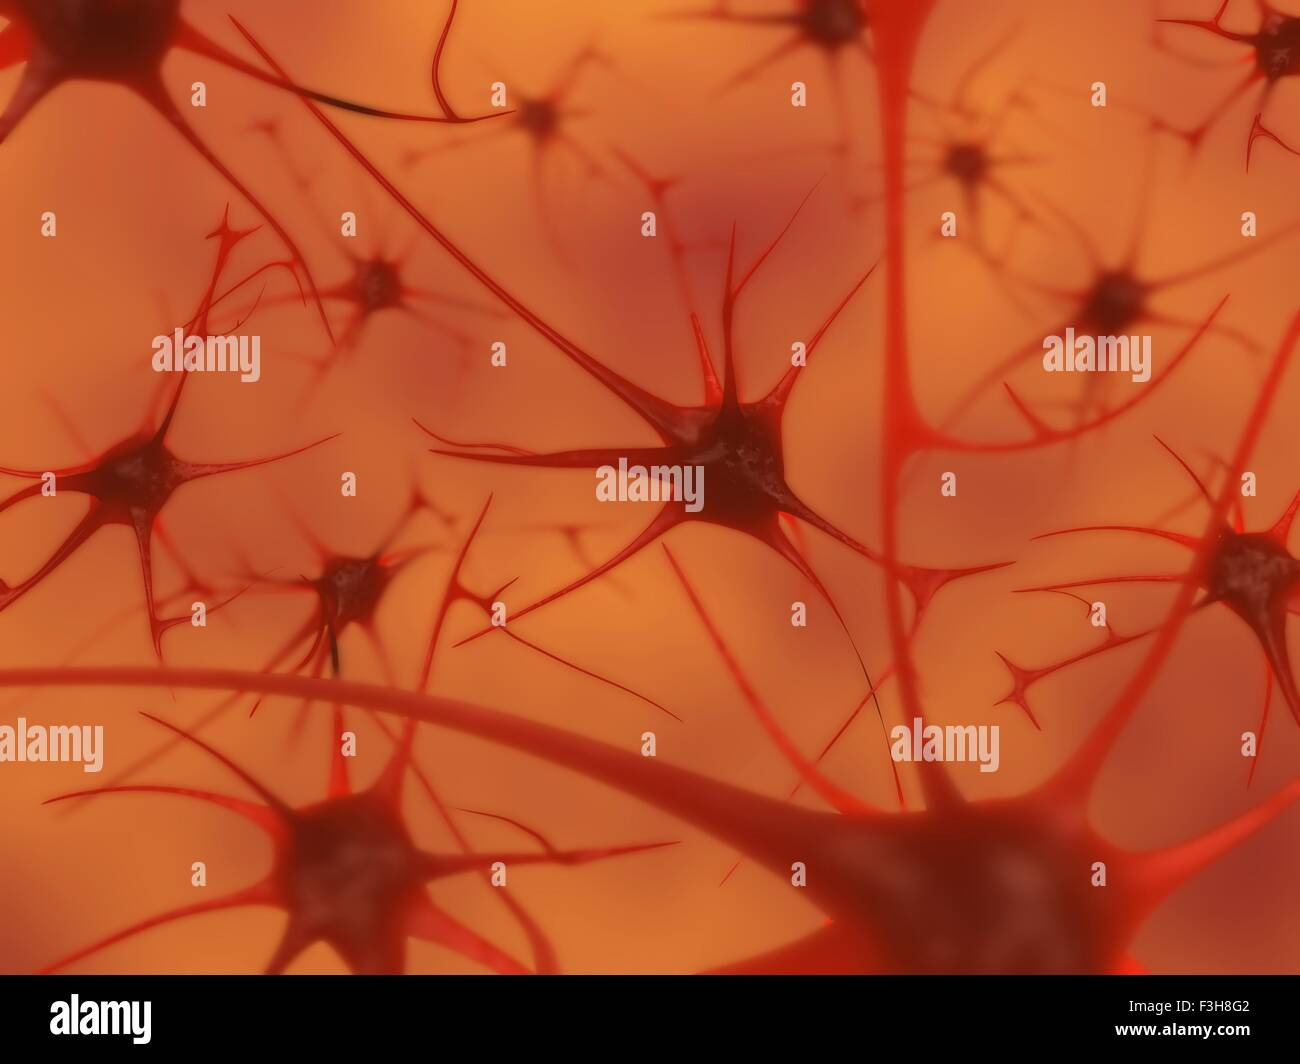 3D illustration of neurons in the brain - Stock Image